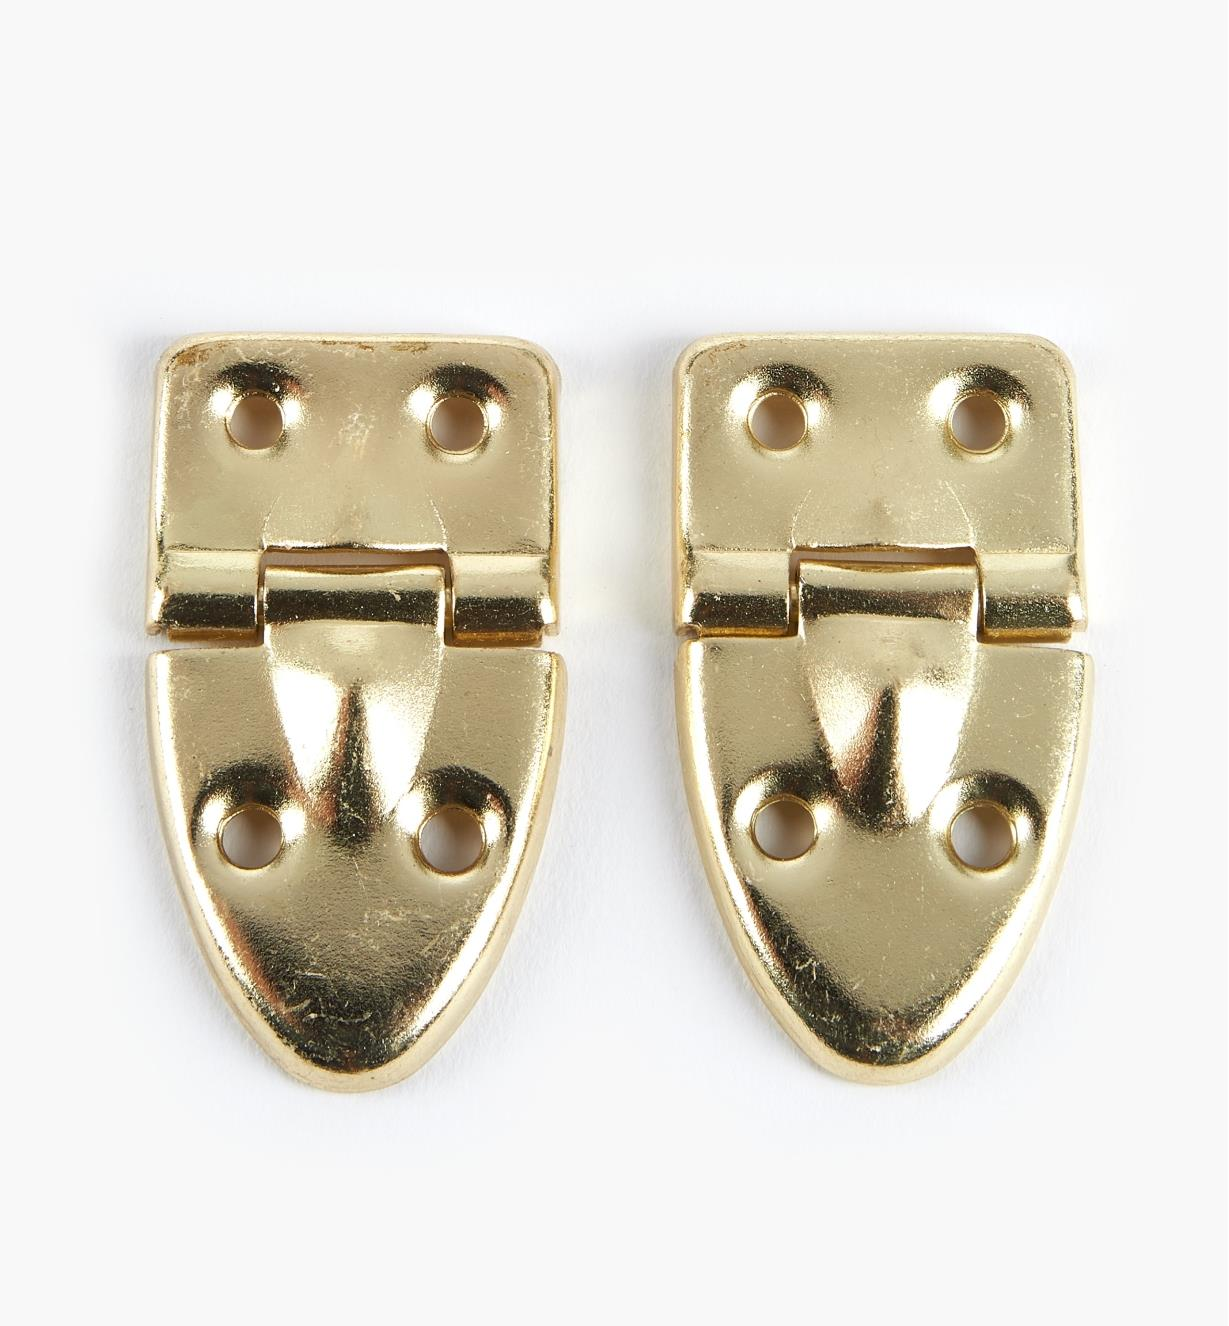 00S6601 - Small Trunk Hinges, pr.